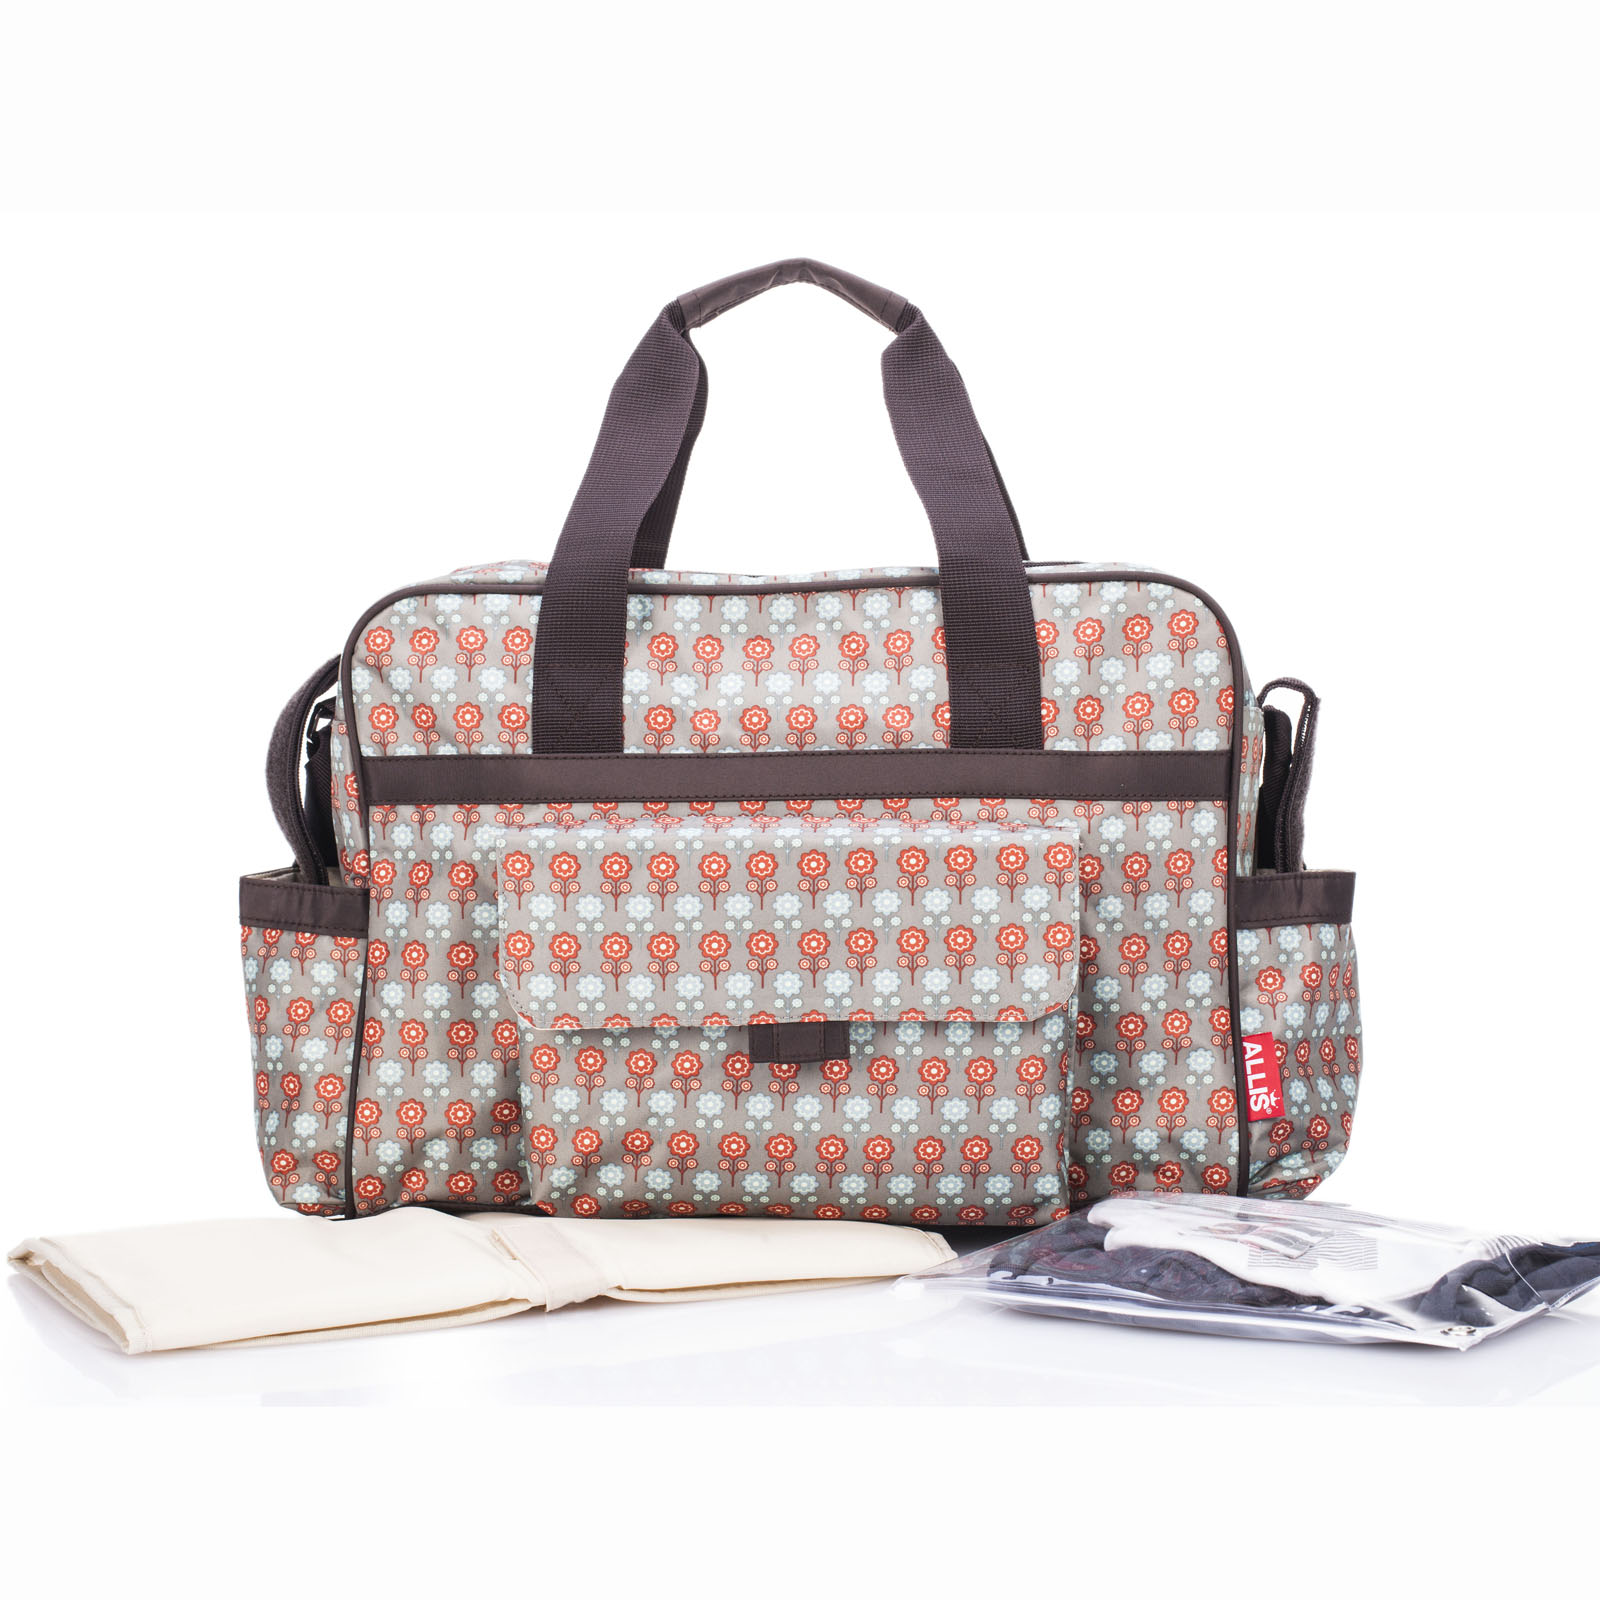 allis baby changing bag luxury nappy diaper bags 3pcs insulated red grey ebay. Black Bedroom Furniture Sets. Home Design Ideas